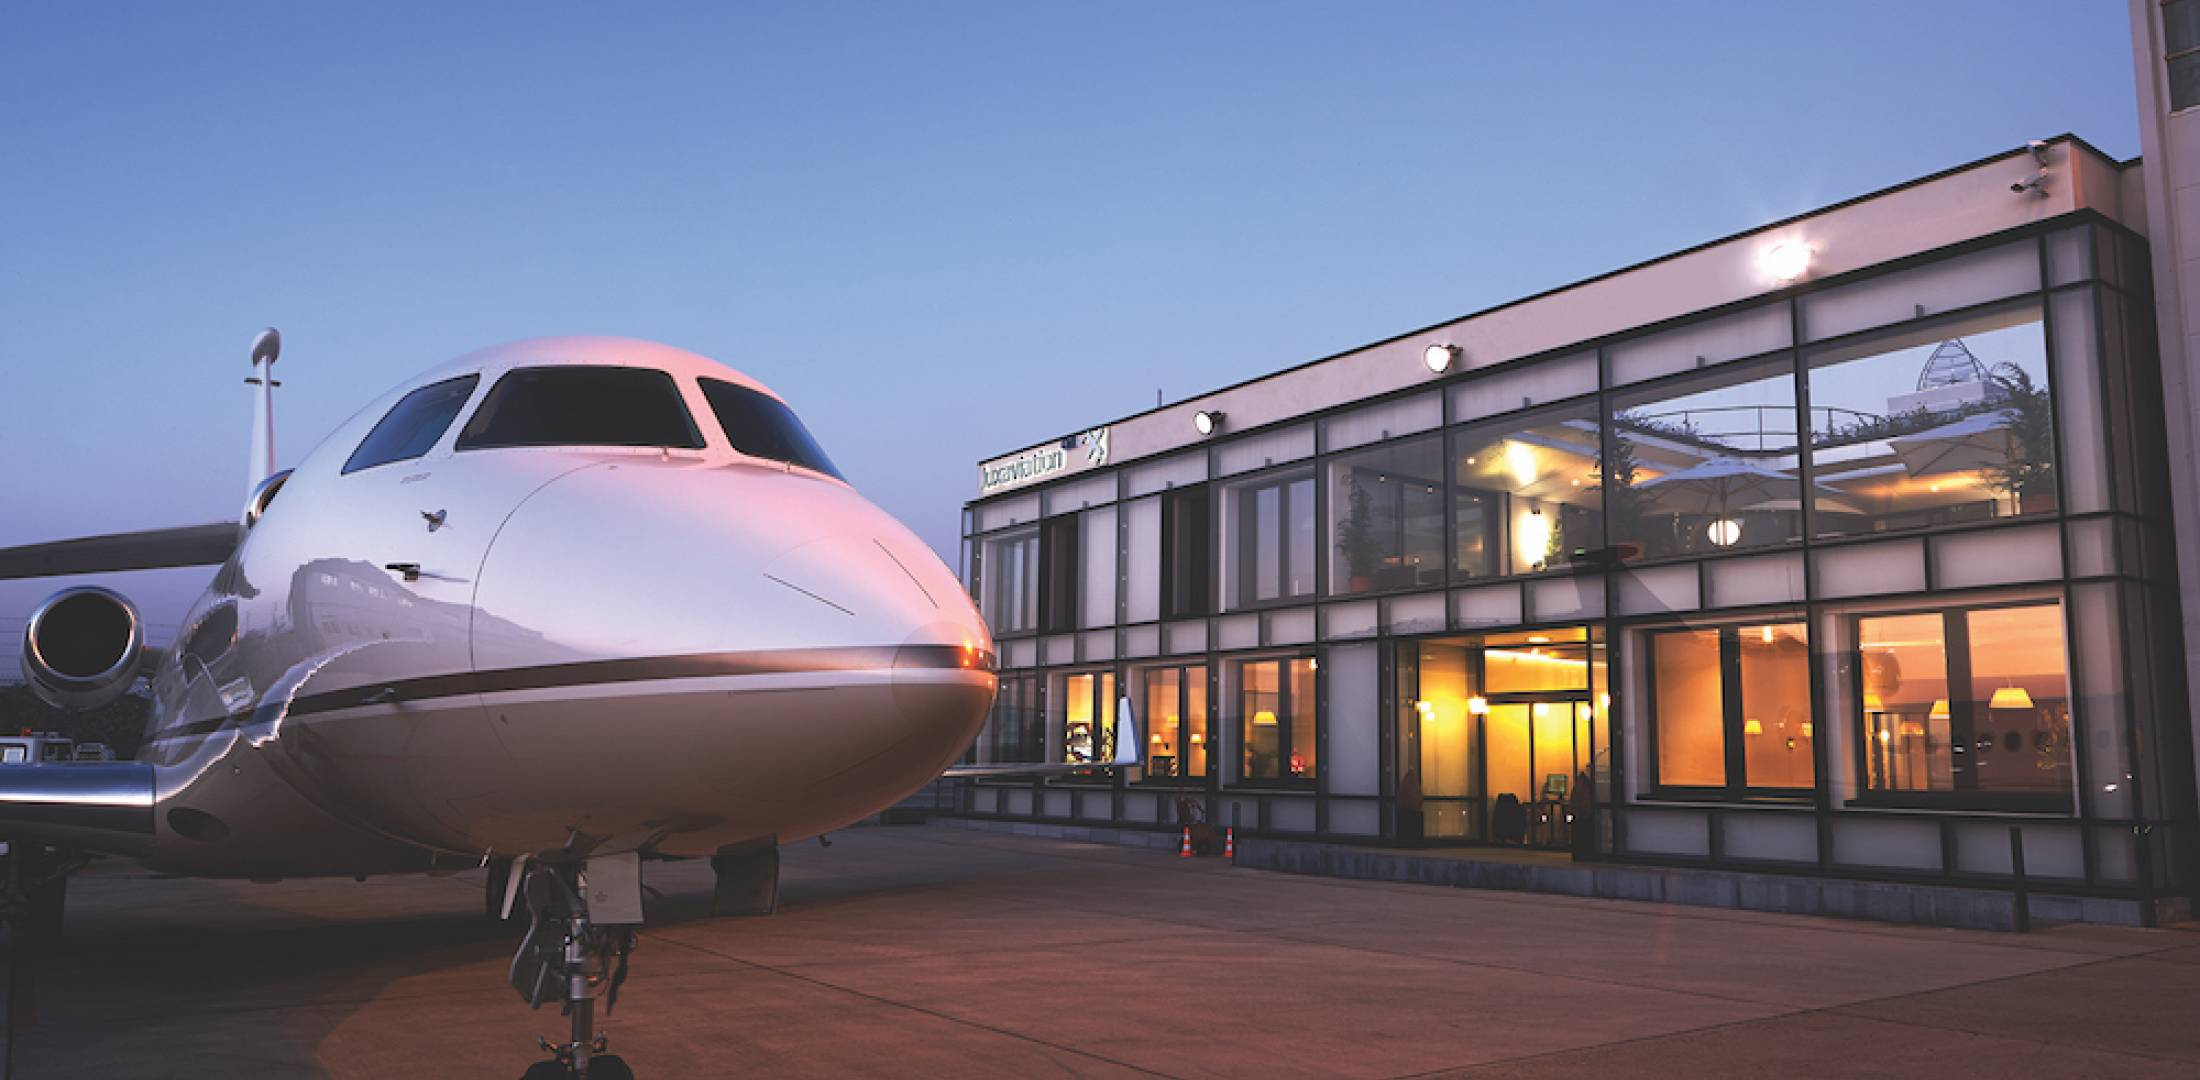 Luxaviation Le Bourget